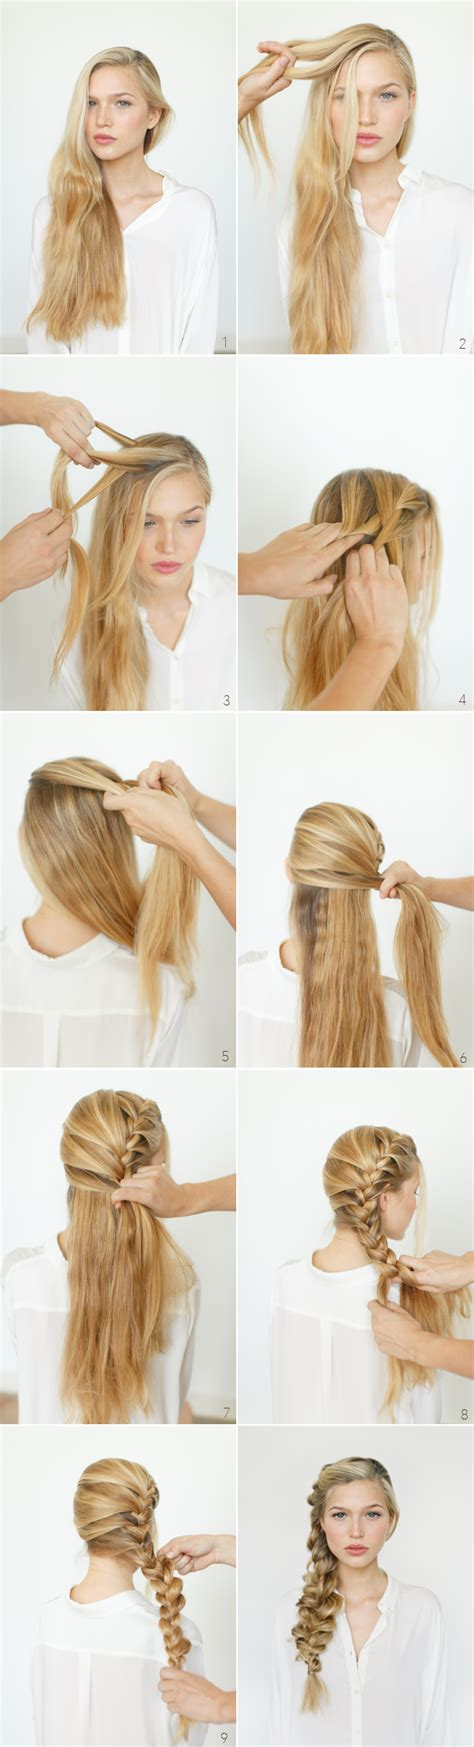 hairstyles and braids tutorial romantic side braid hair tutorial wedding hairstyles for